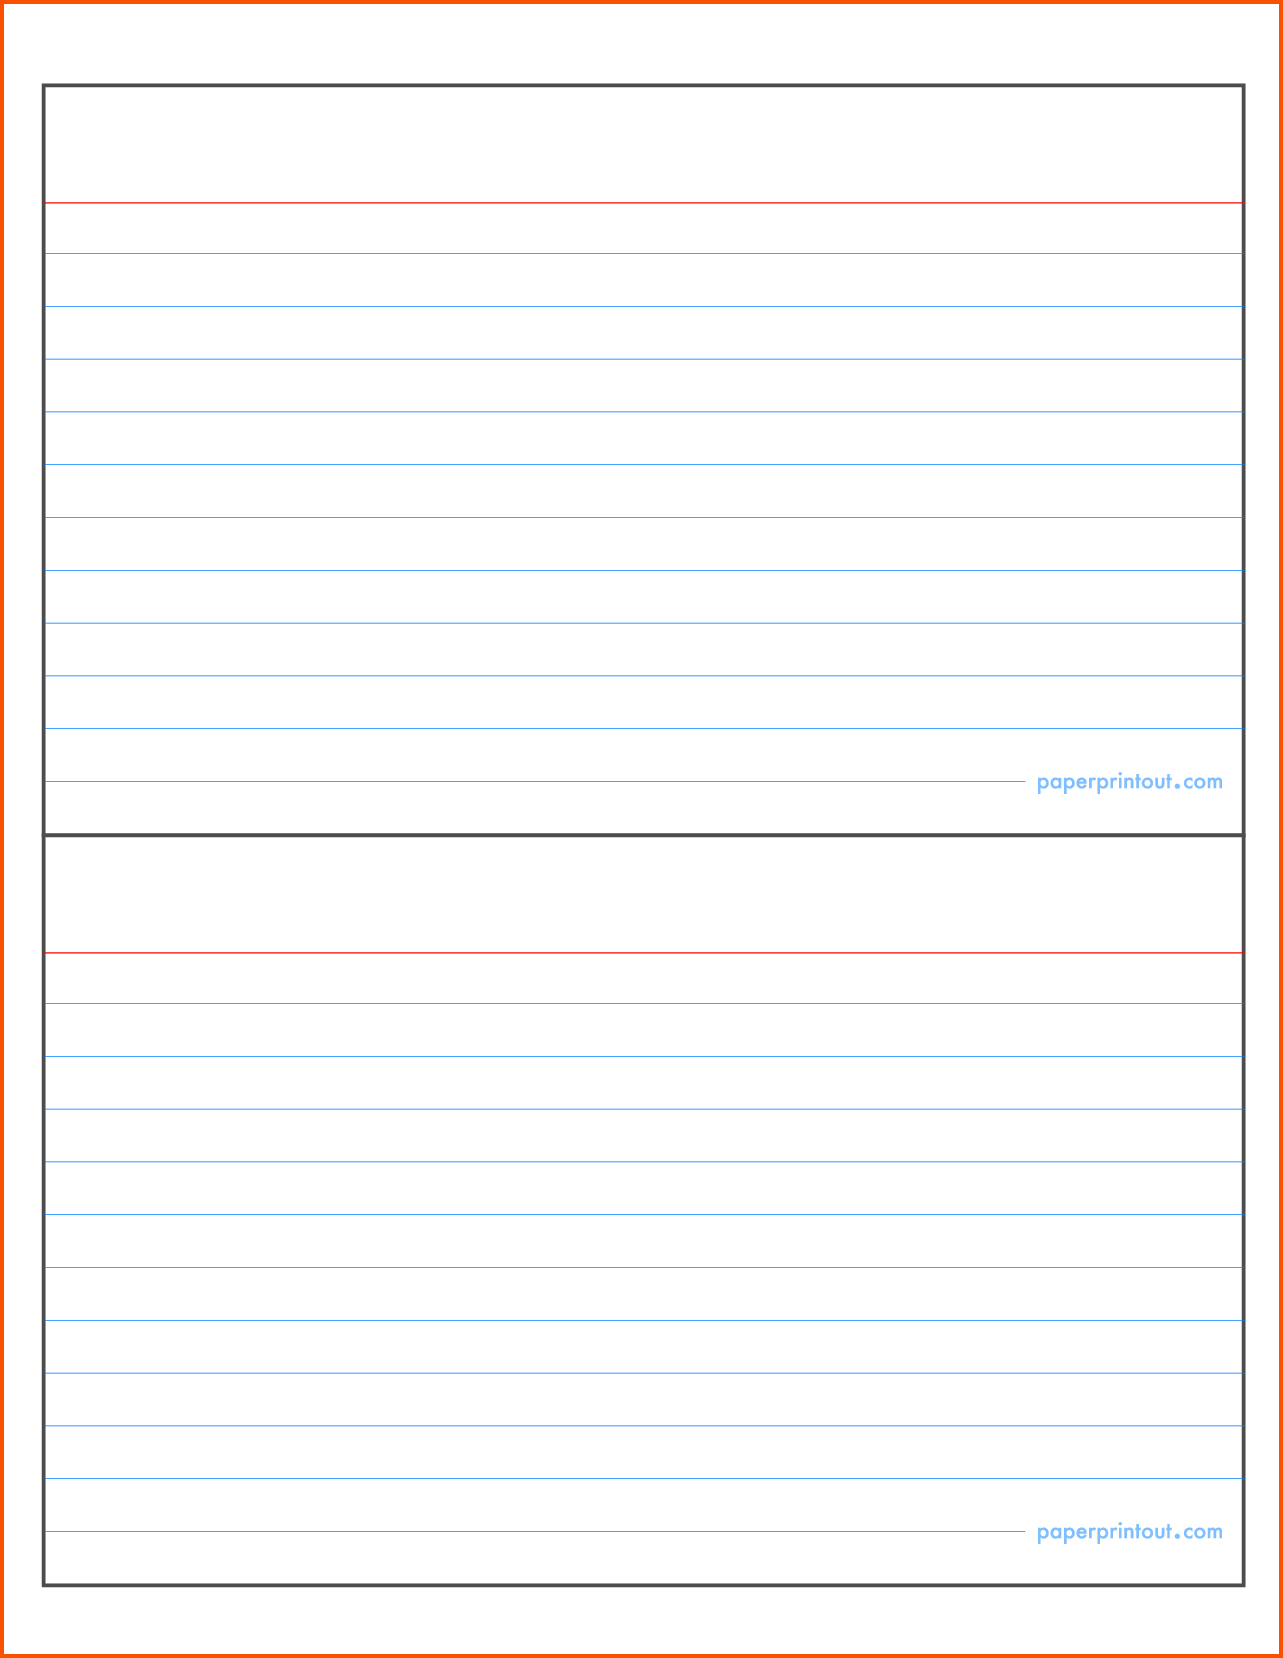 Images Of Ms Word  X  Index Card Template  Zeept For Word Template For 3X5 Index Cards